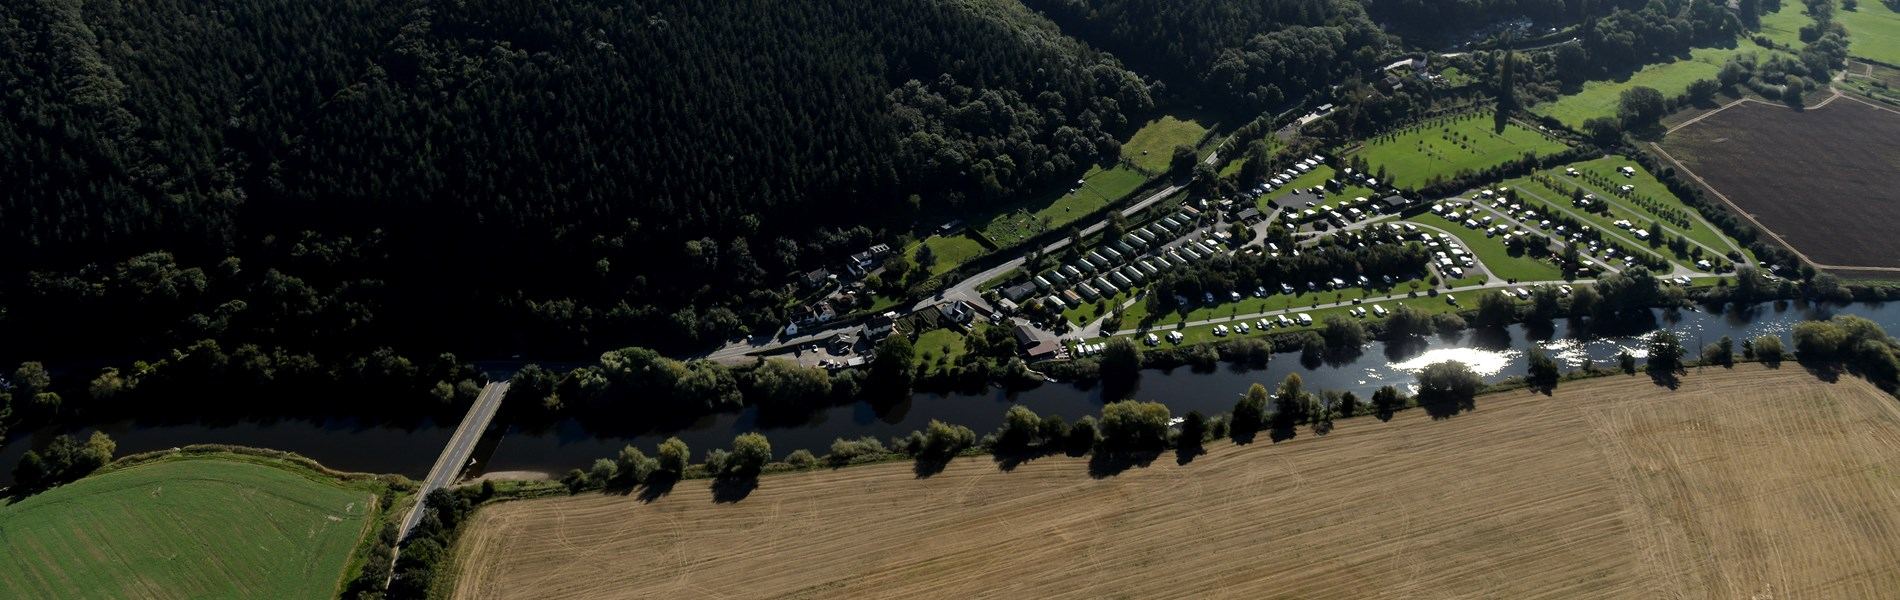 Lucksall Caravan & Camping park situated on the banks of the river Wye.